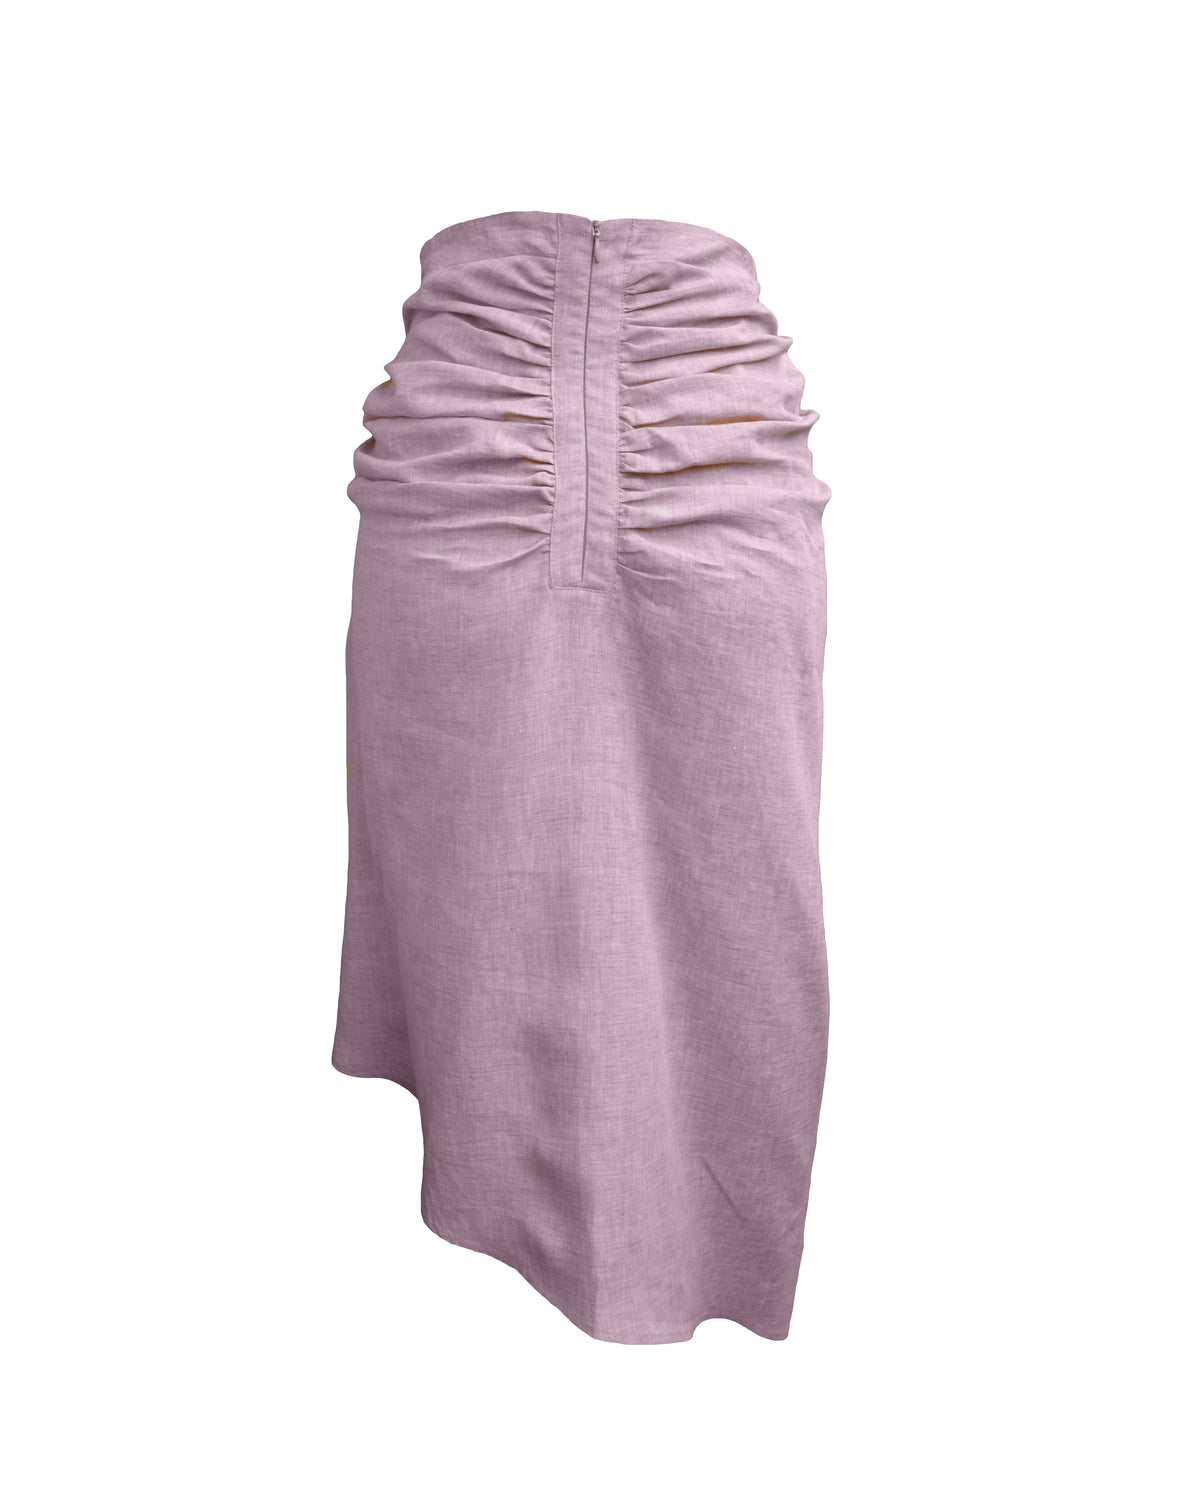 OTM Exclusive: Coco Skirt Blush Pink